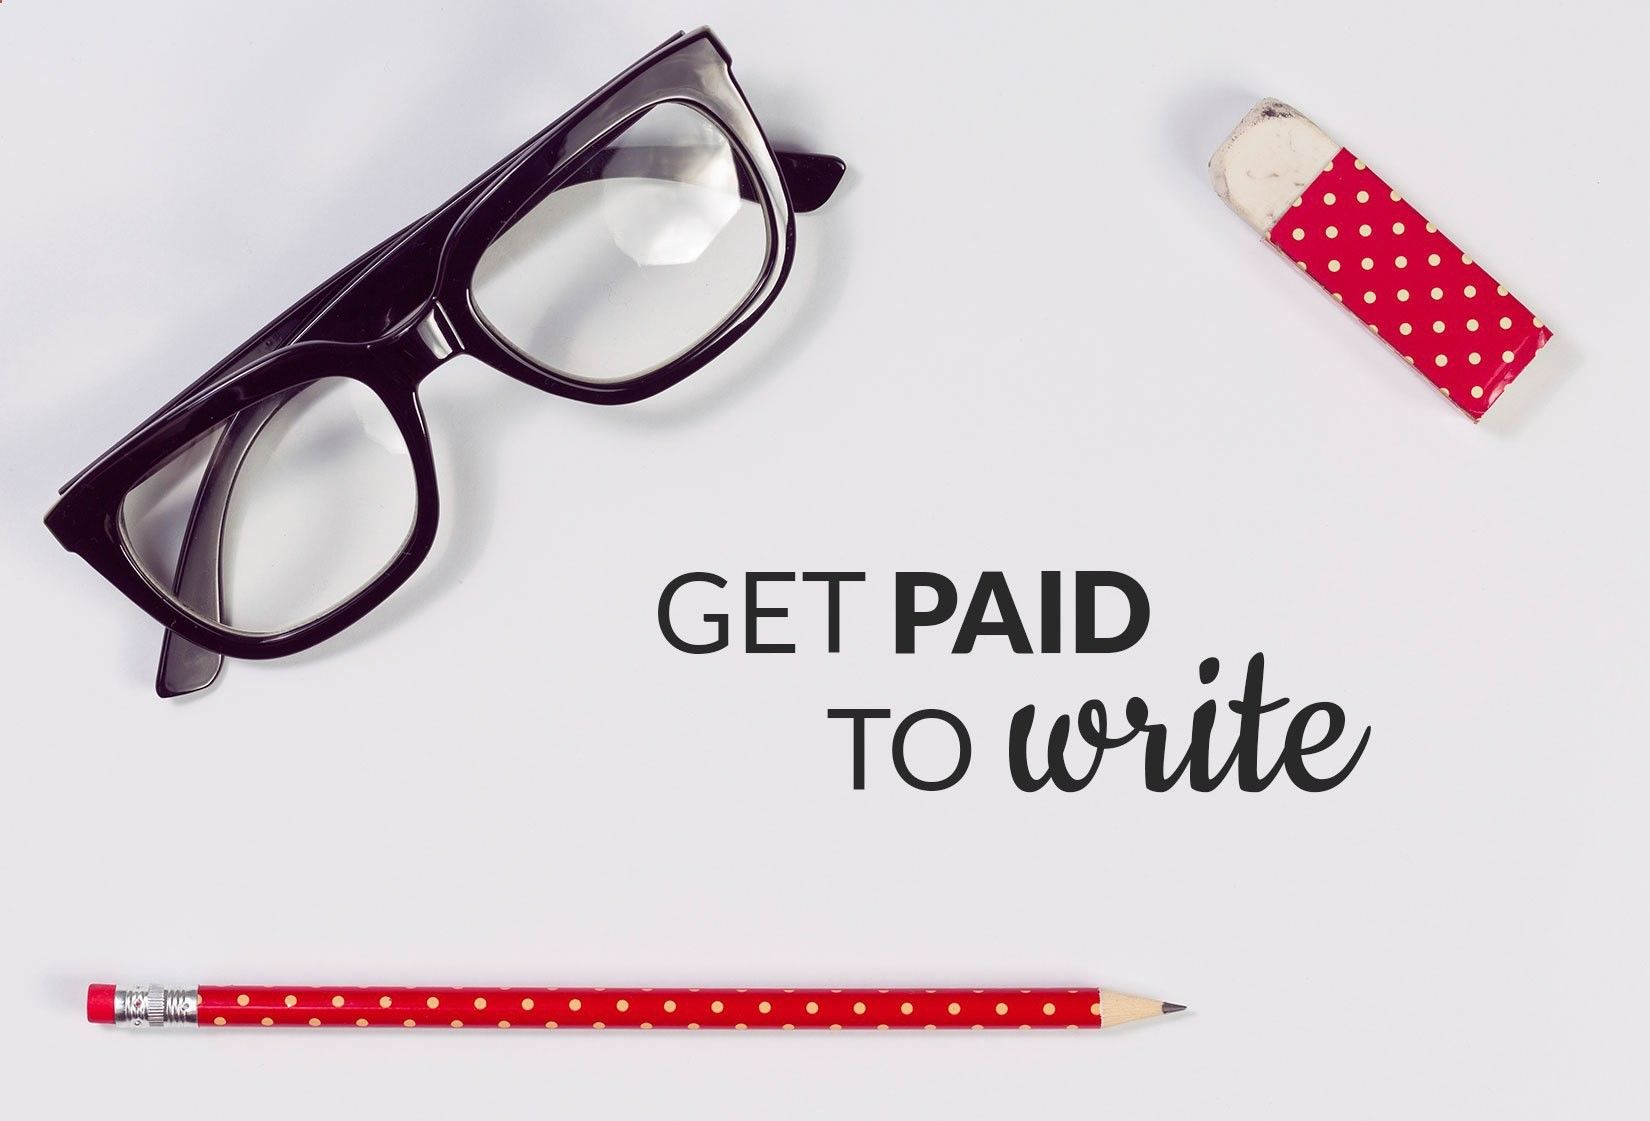 get paid to write articles online get paid to blog paid to  get paid to write articles online get paid to blog paid to write writing articles online lance writing sites getting paid to blog lance writing